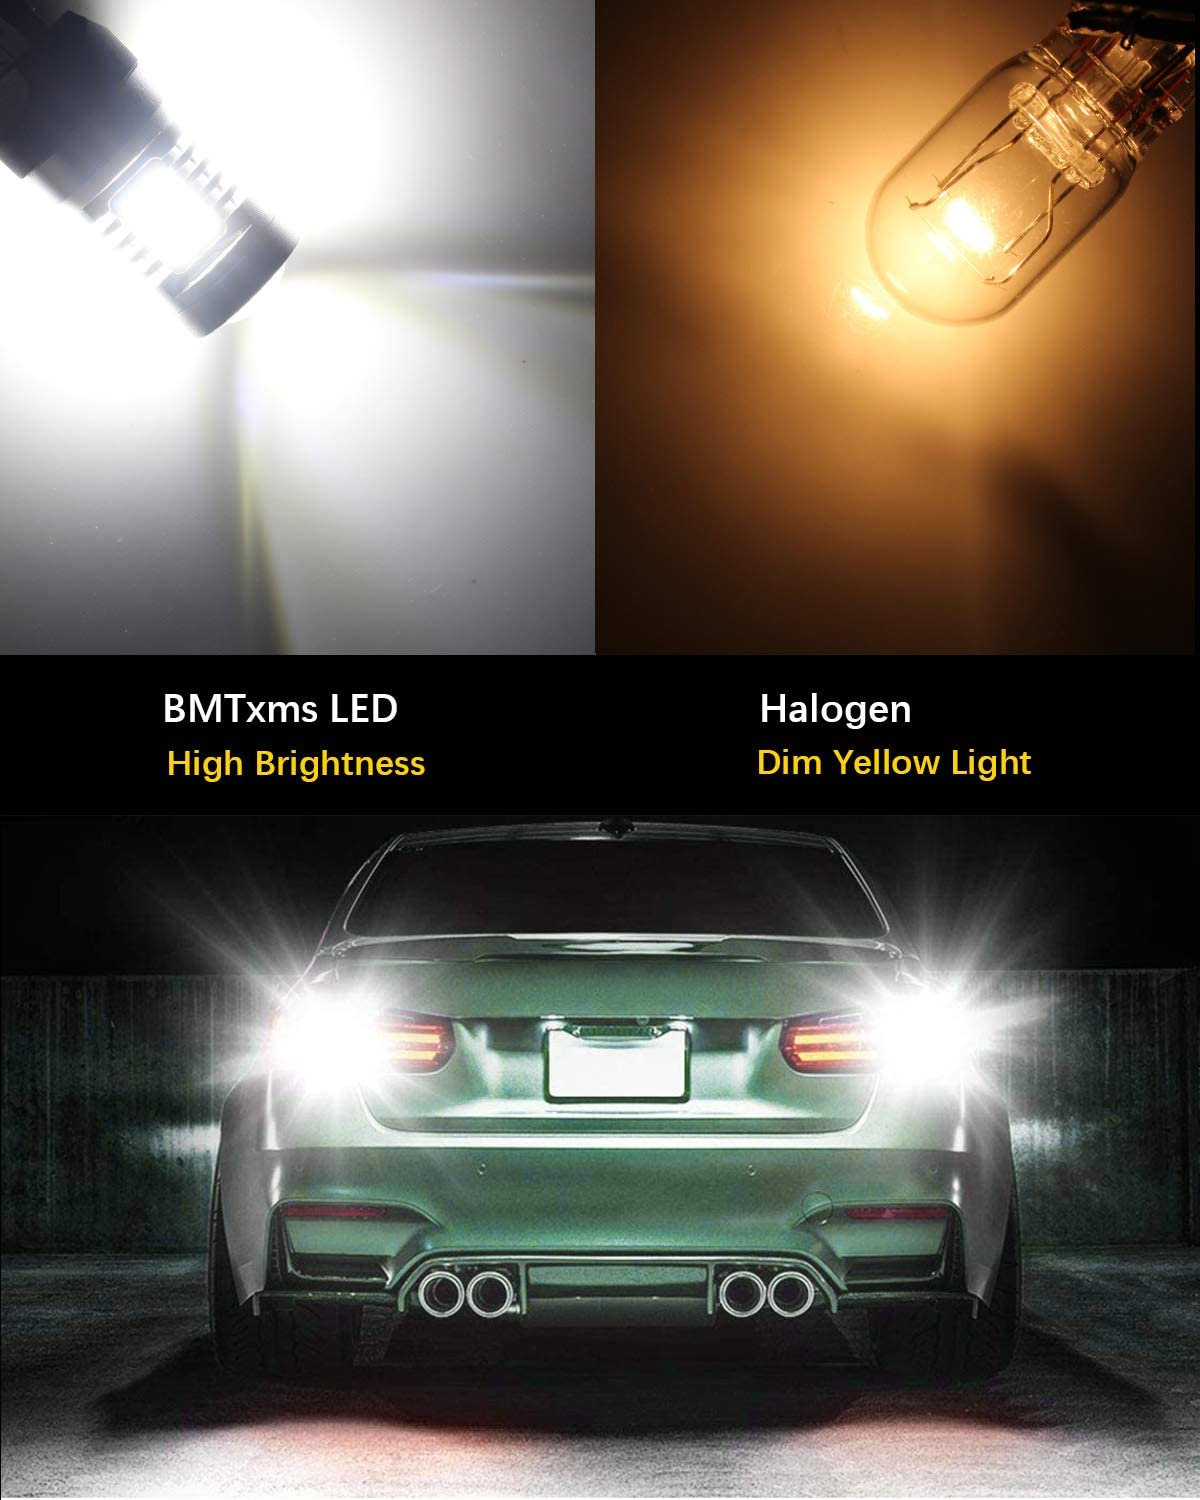 1156 LED Bulbs Reverse Light BA15S 7506 1003 1141 P21W LED Bulbs with Projector Lens 1156 Led Replacement Bulb for LED Backup Lights Tail Light Lawn Mower CANBUS Error Free DRL Lights Brake Light